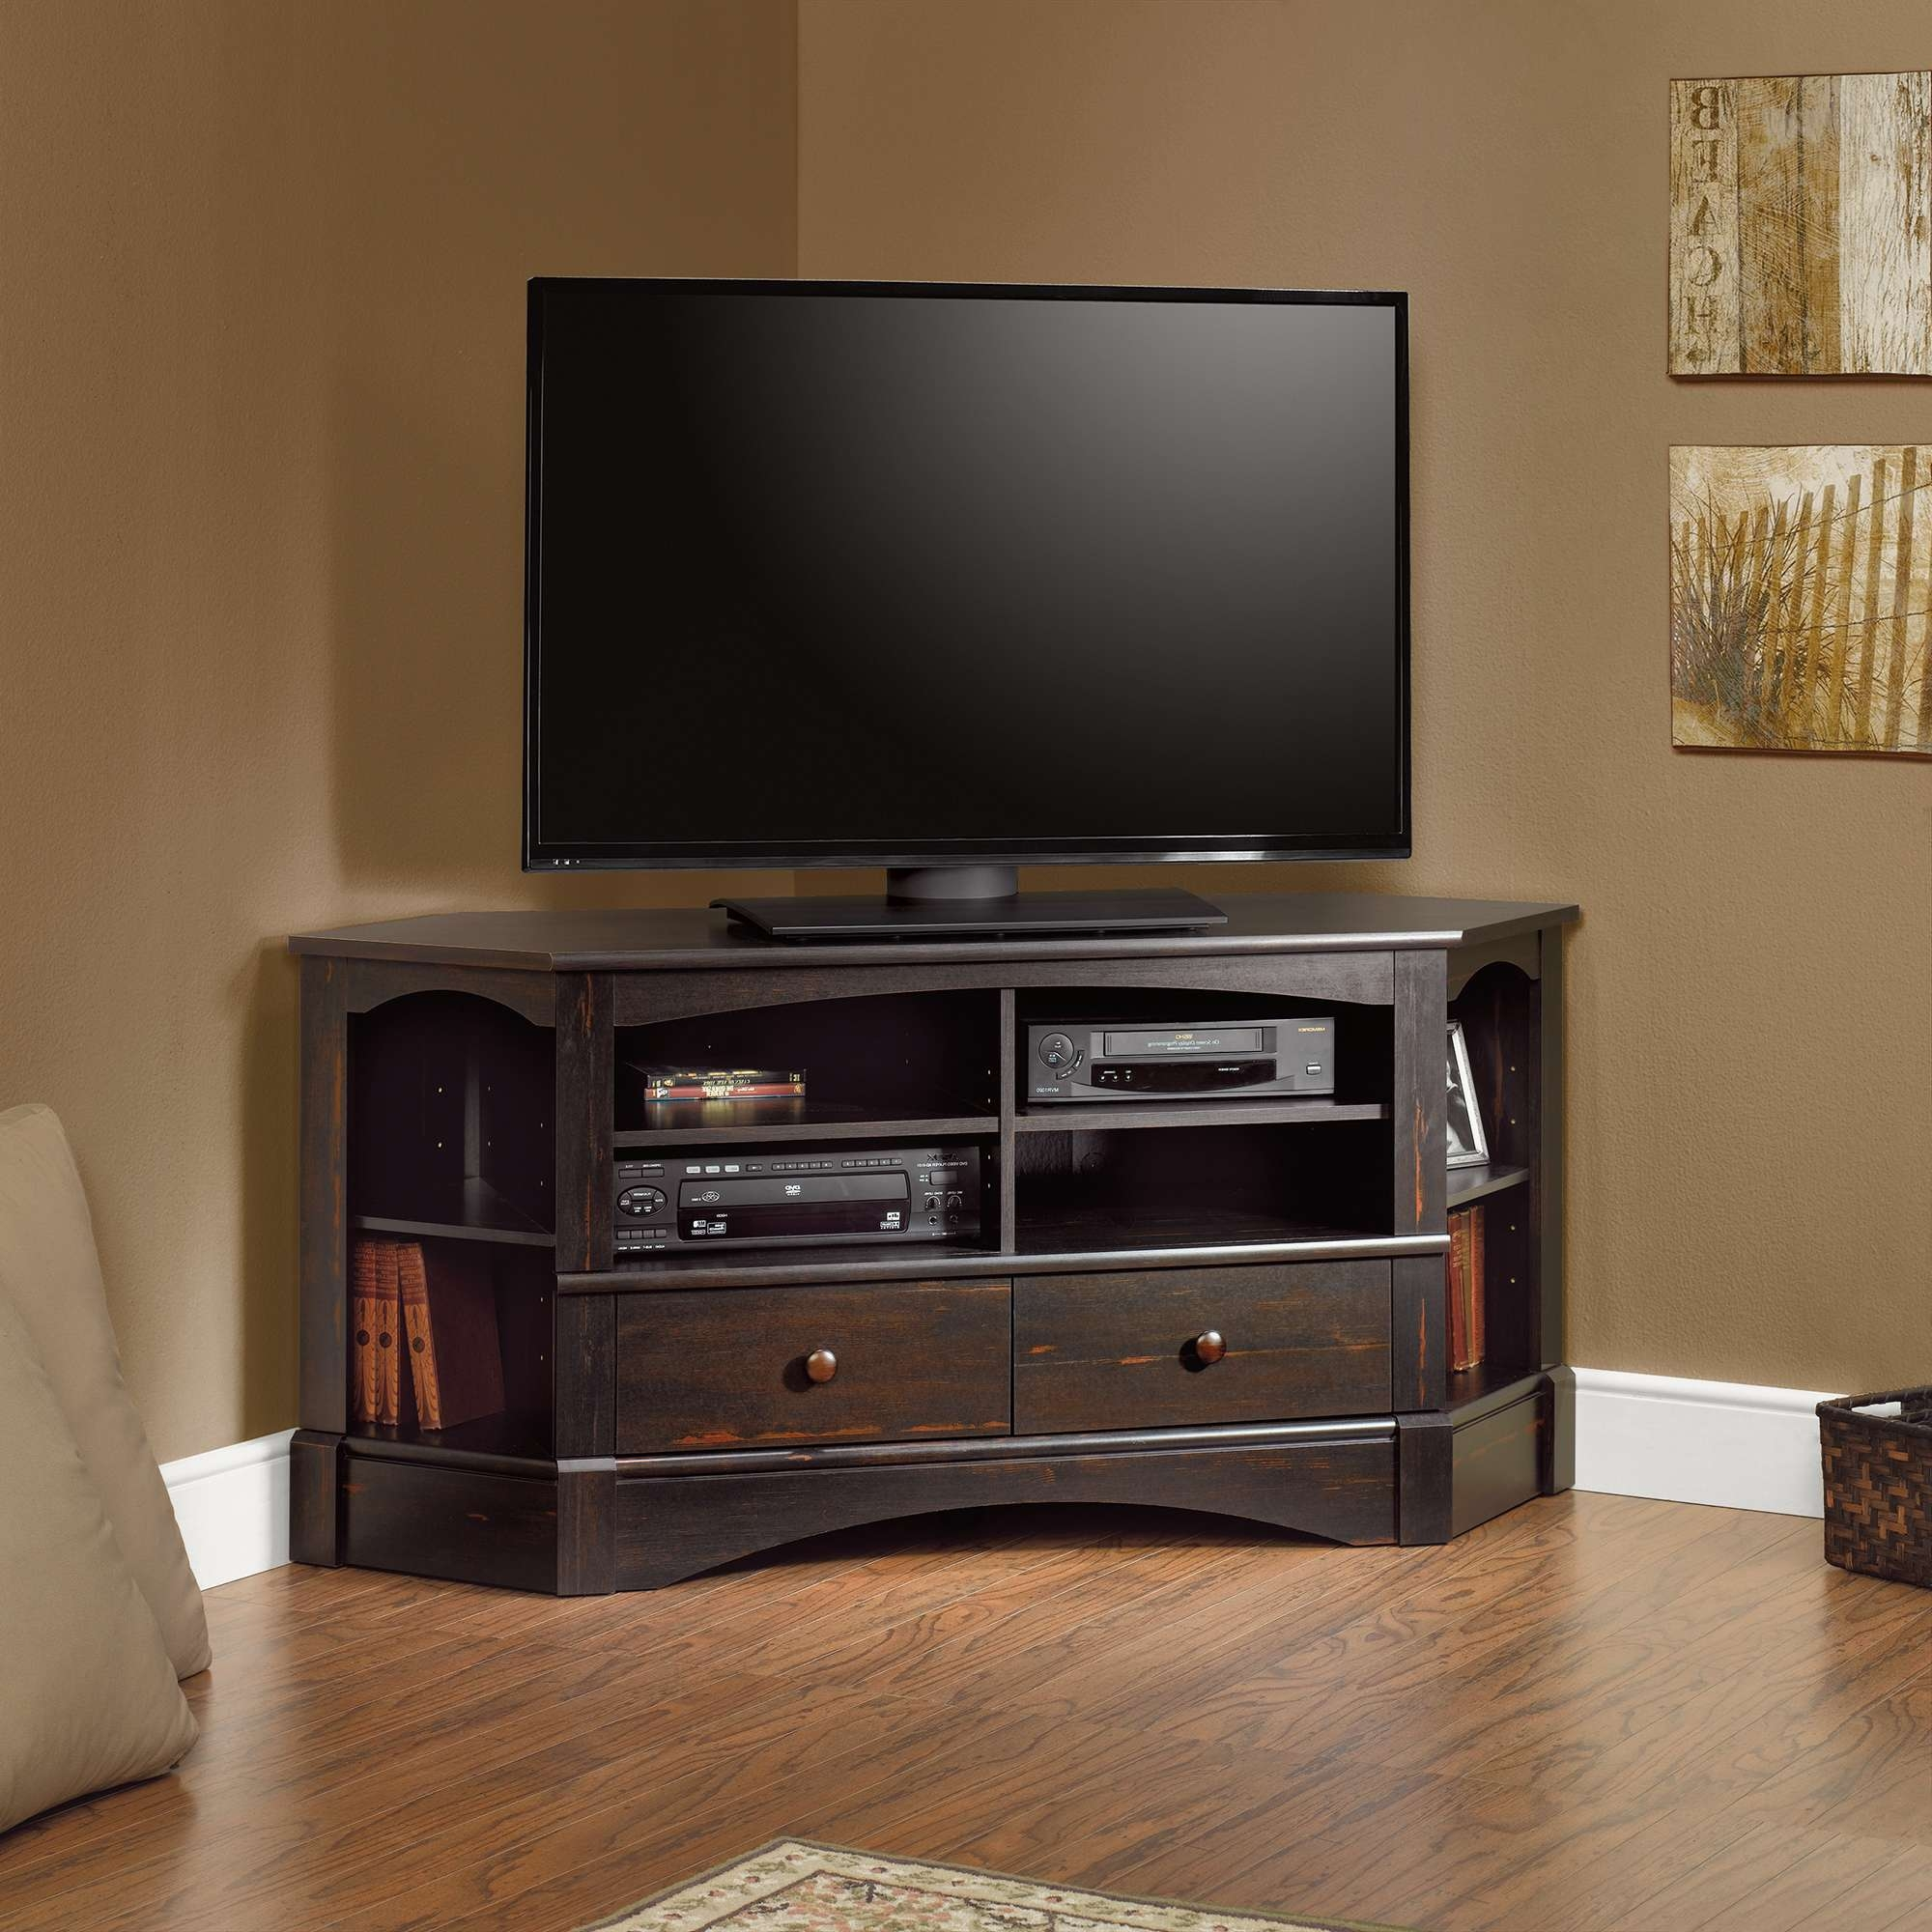 Fancy Matte Varnished Dark Oak Wood Tall Corner Tv Stand For With Dark Brown Corner Tv Stands (View 2 of 15)